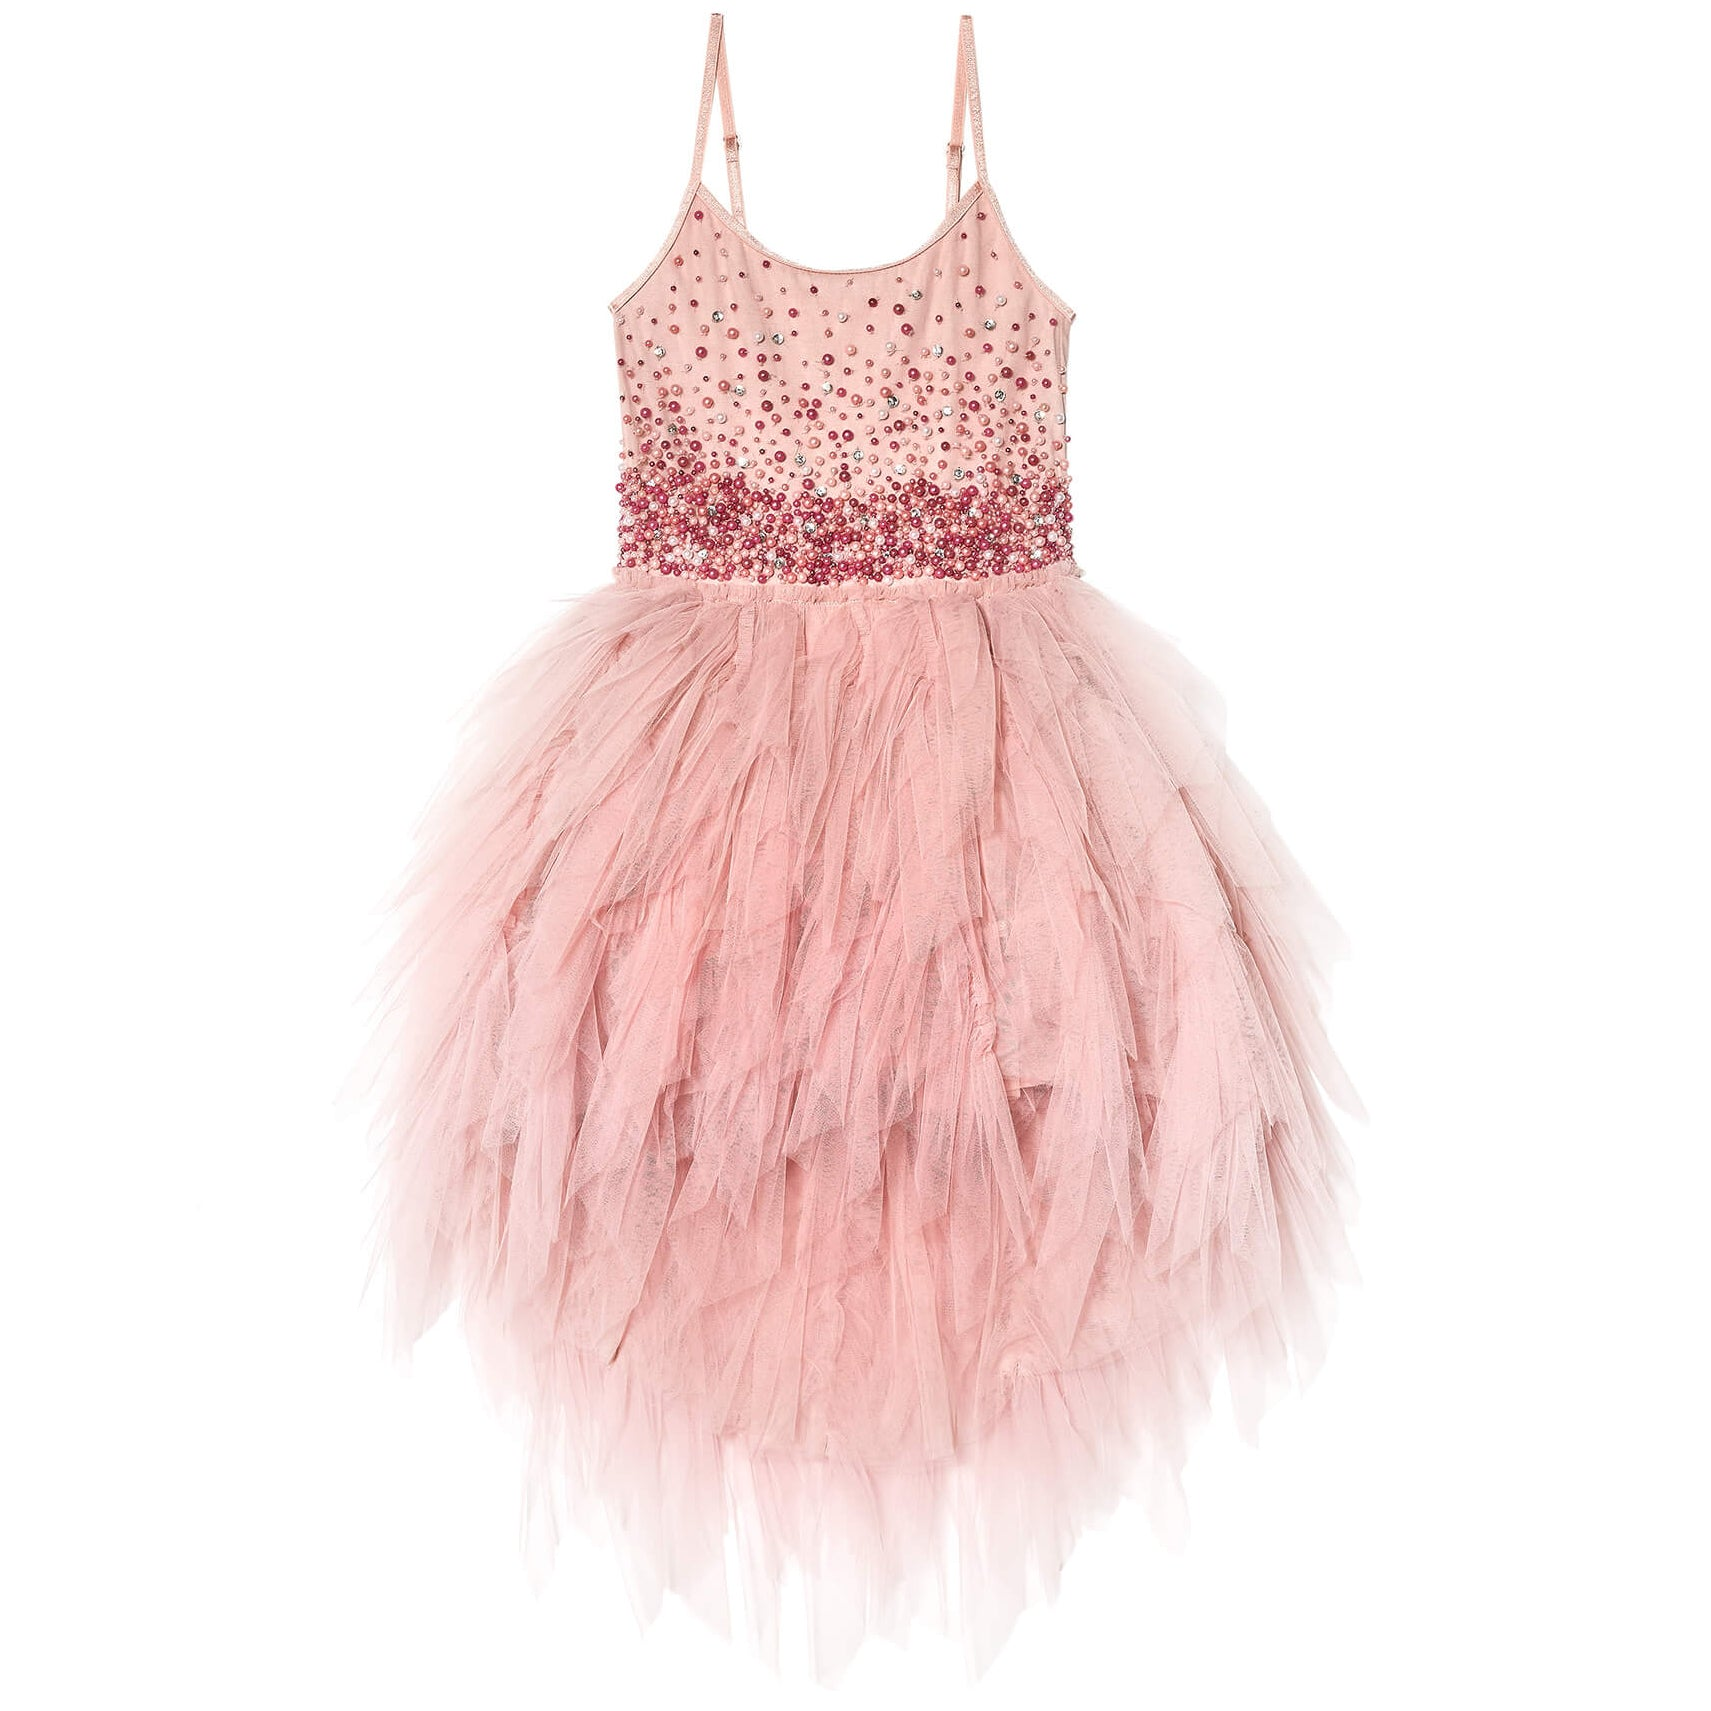 tutu du monde funfetti tutu dress